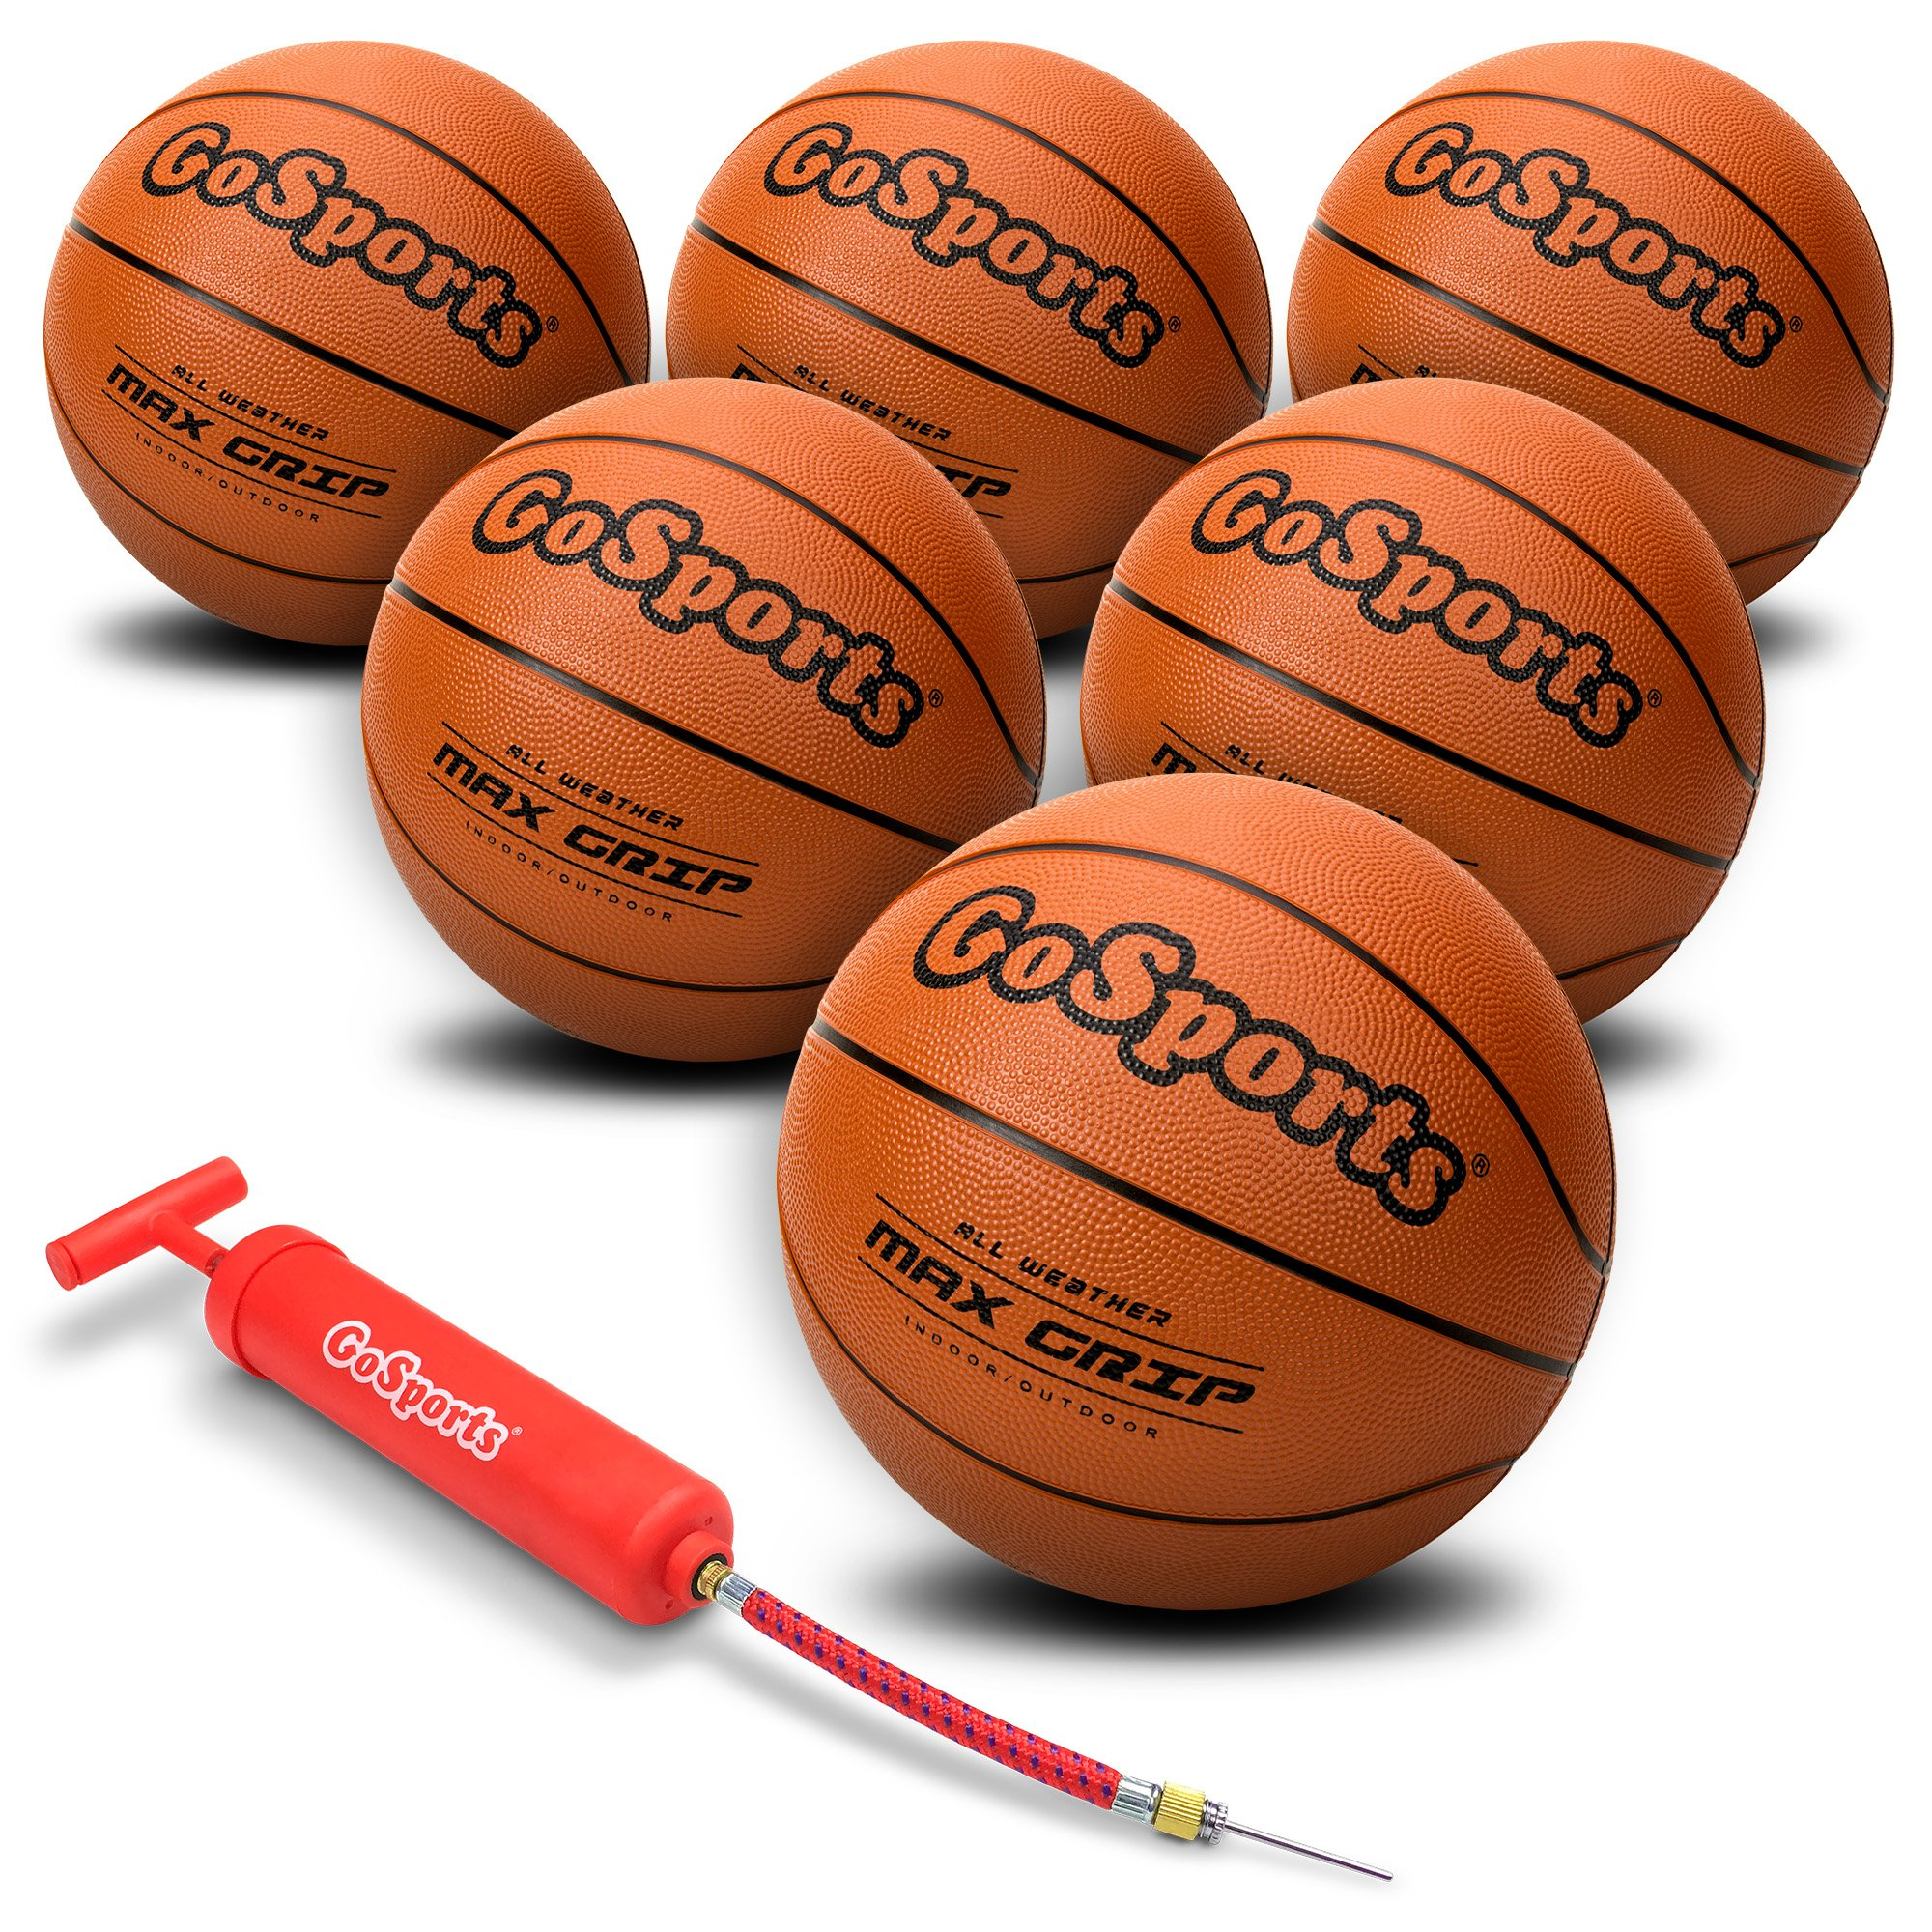 GoSports Indoor Outdoor Rubber Basketballs